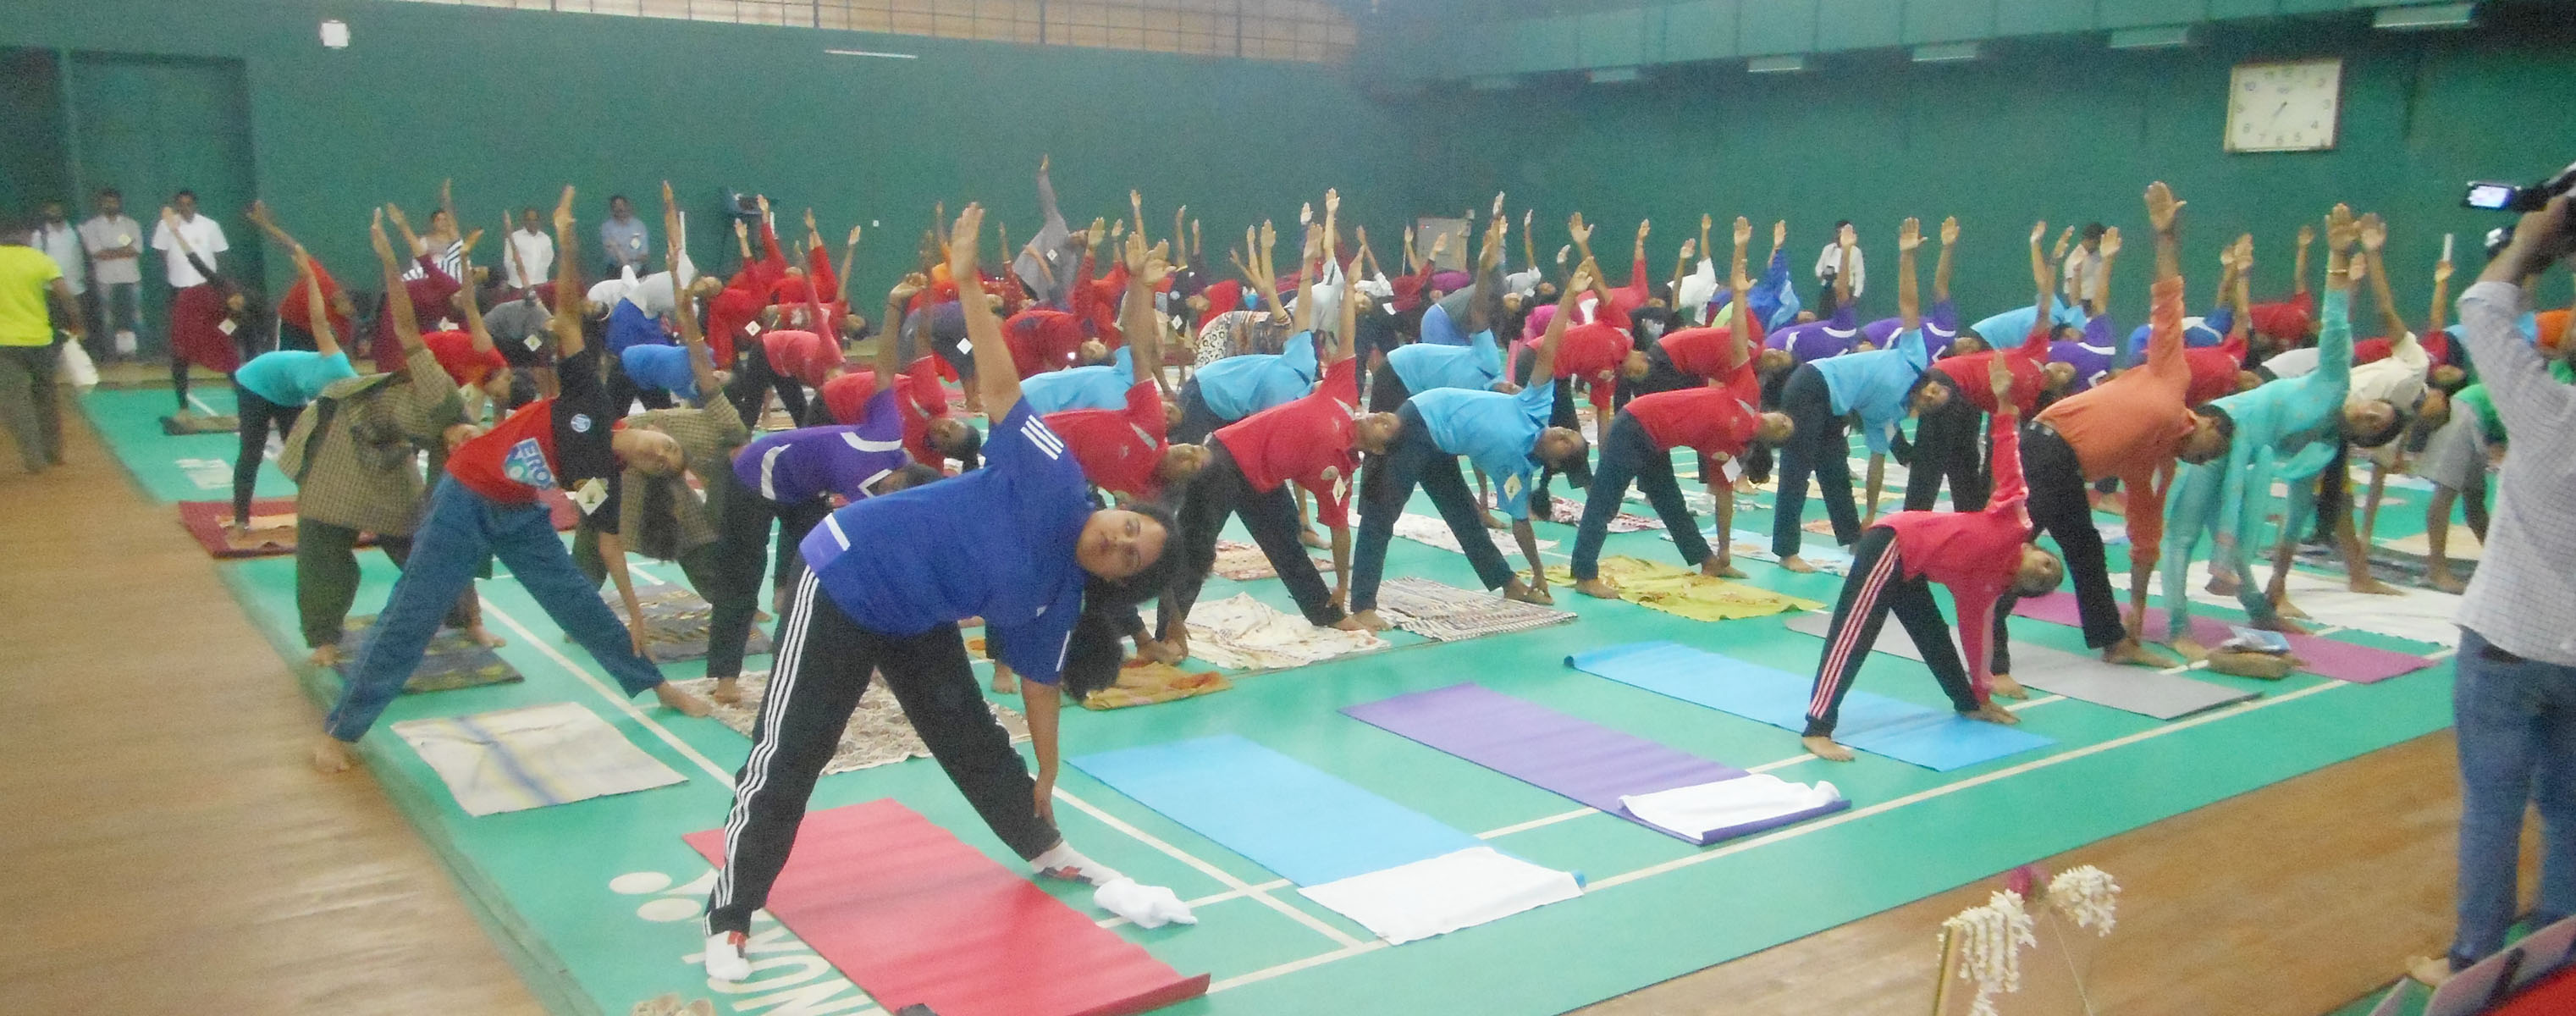 District Administration observes International Yoga Day